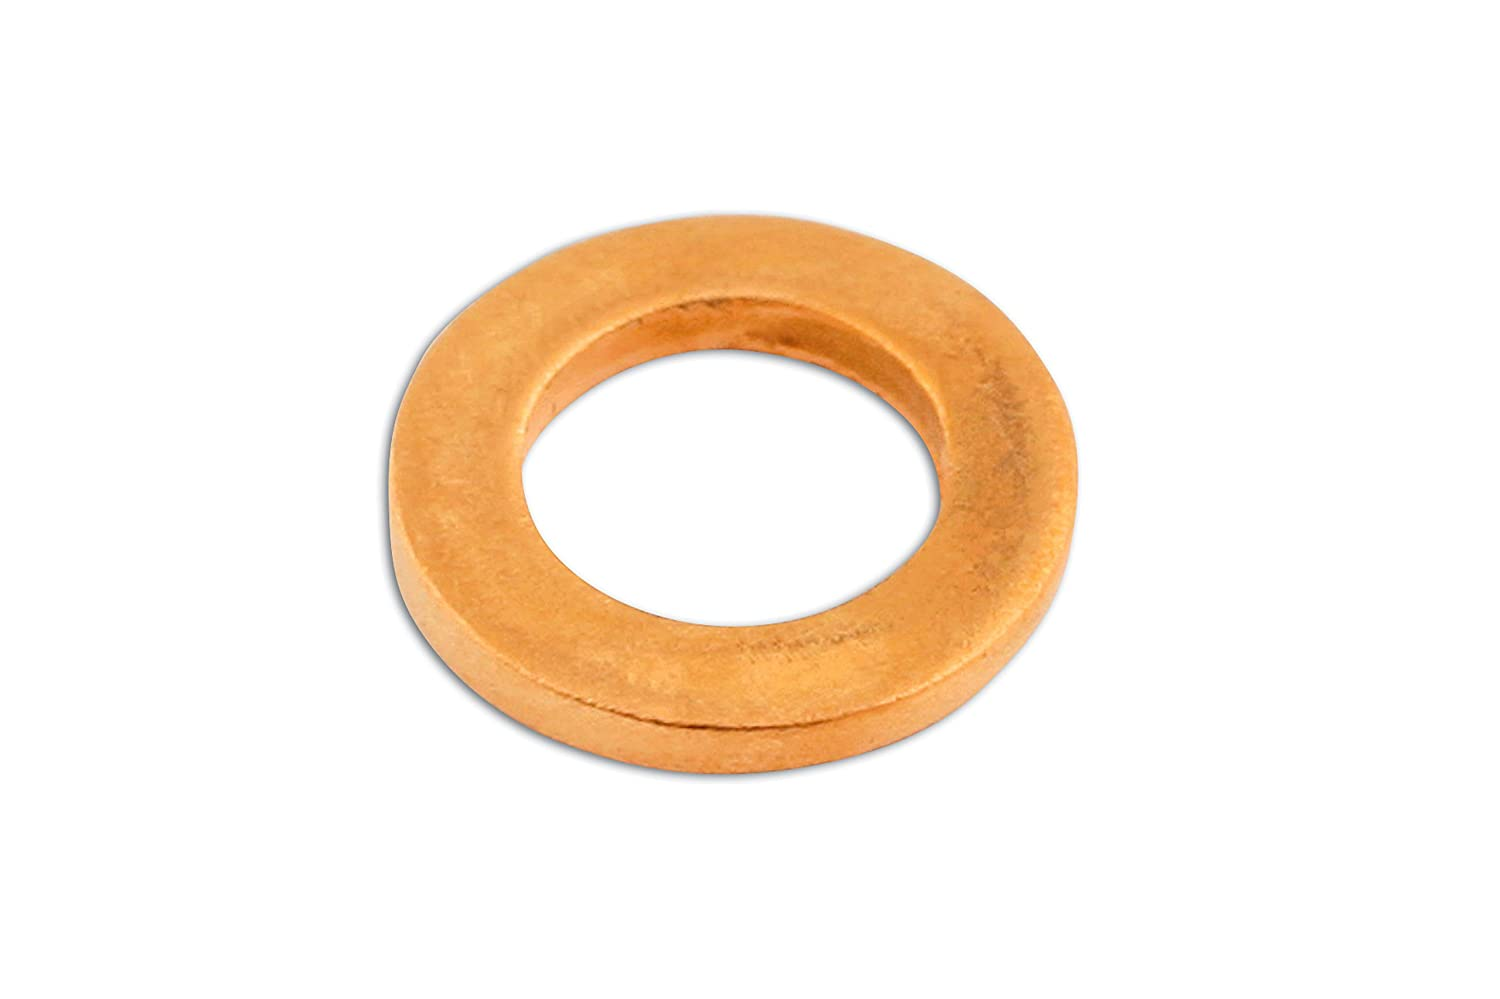 Connect 31837 M16 x 22 x 1.5mm Copper Sealing Washer The Tool Connection Ltd.